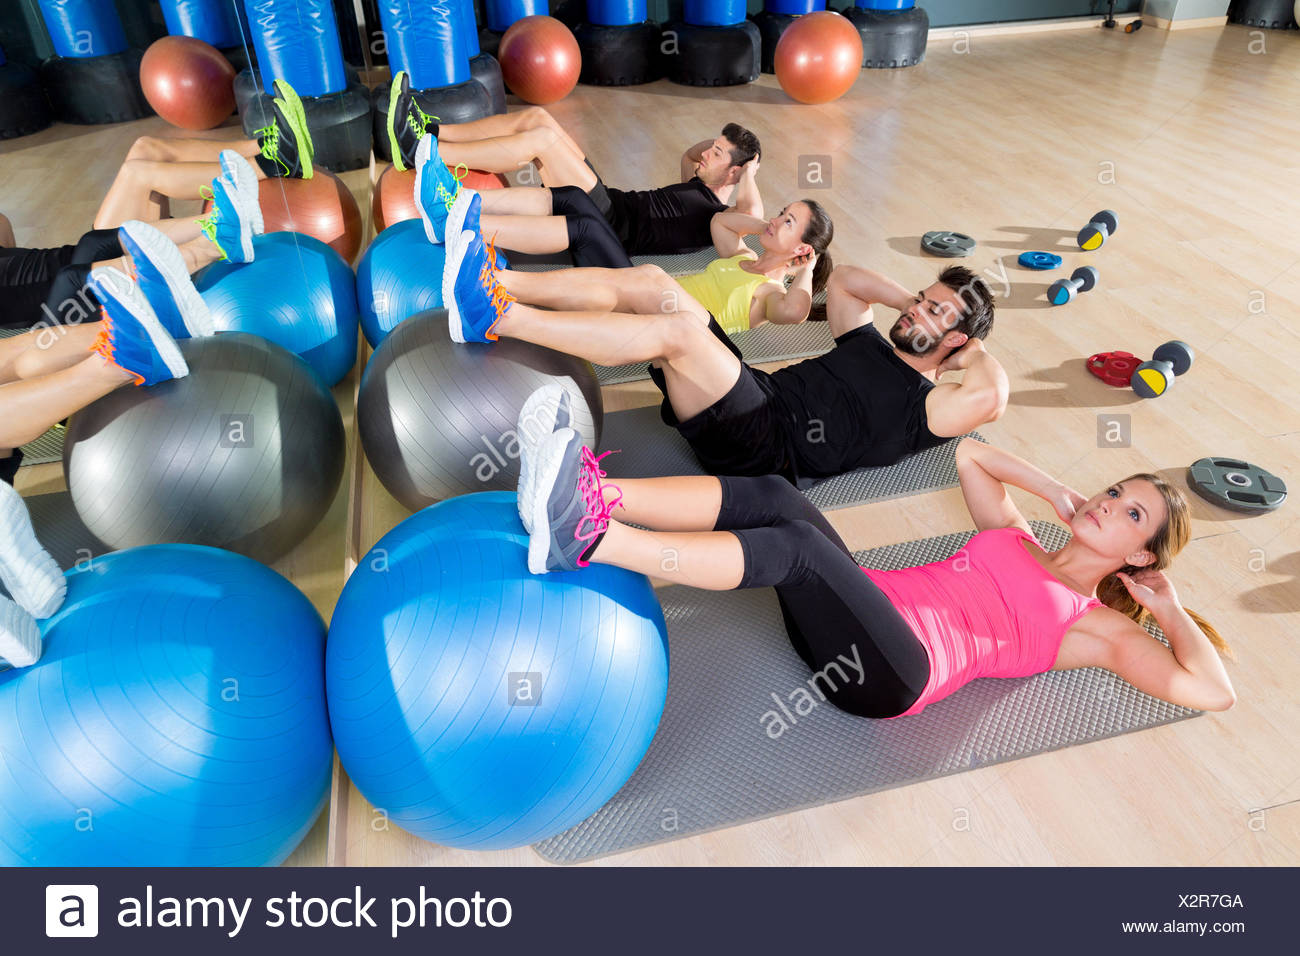 Fitball crunch training group core fitness at gym abdominal workout. - Stock Image